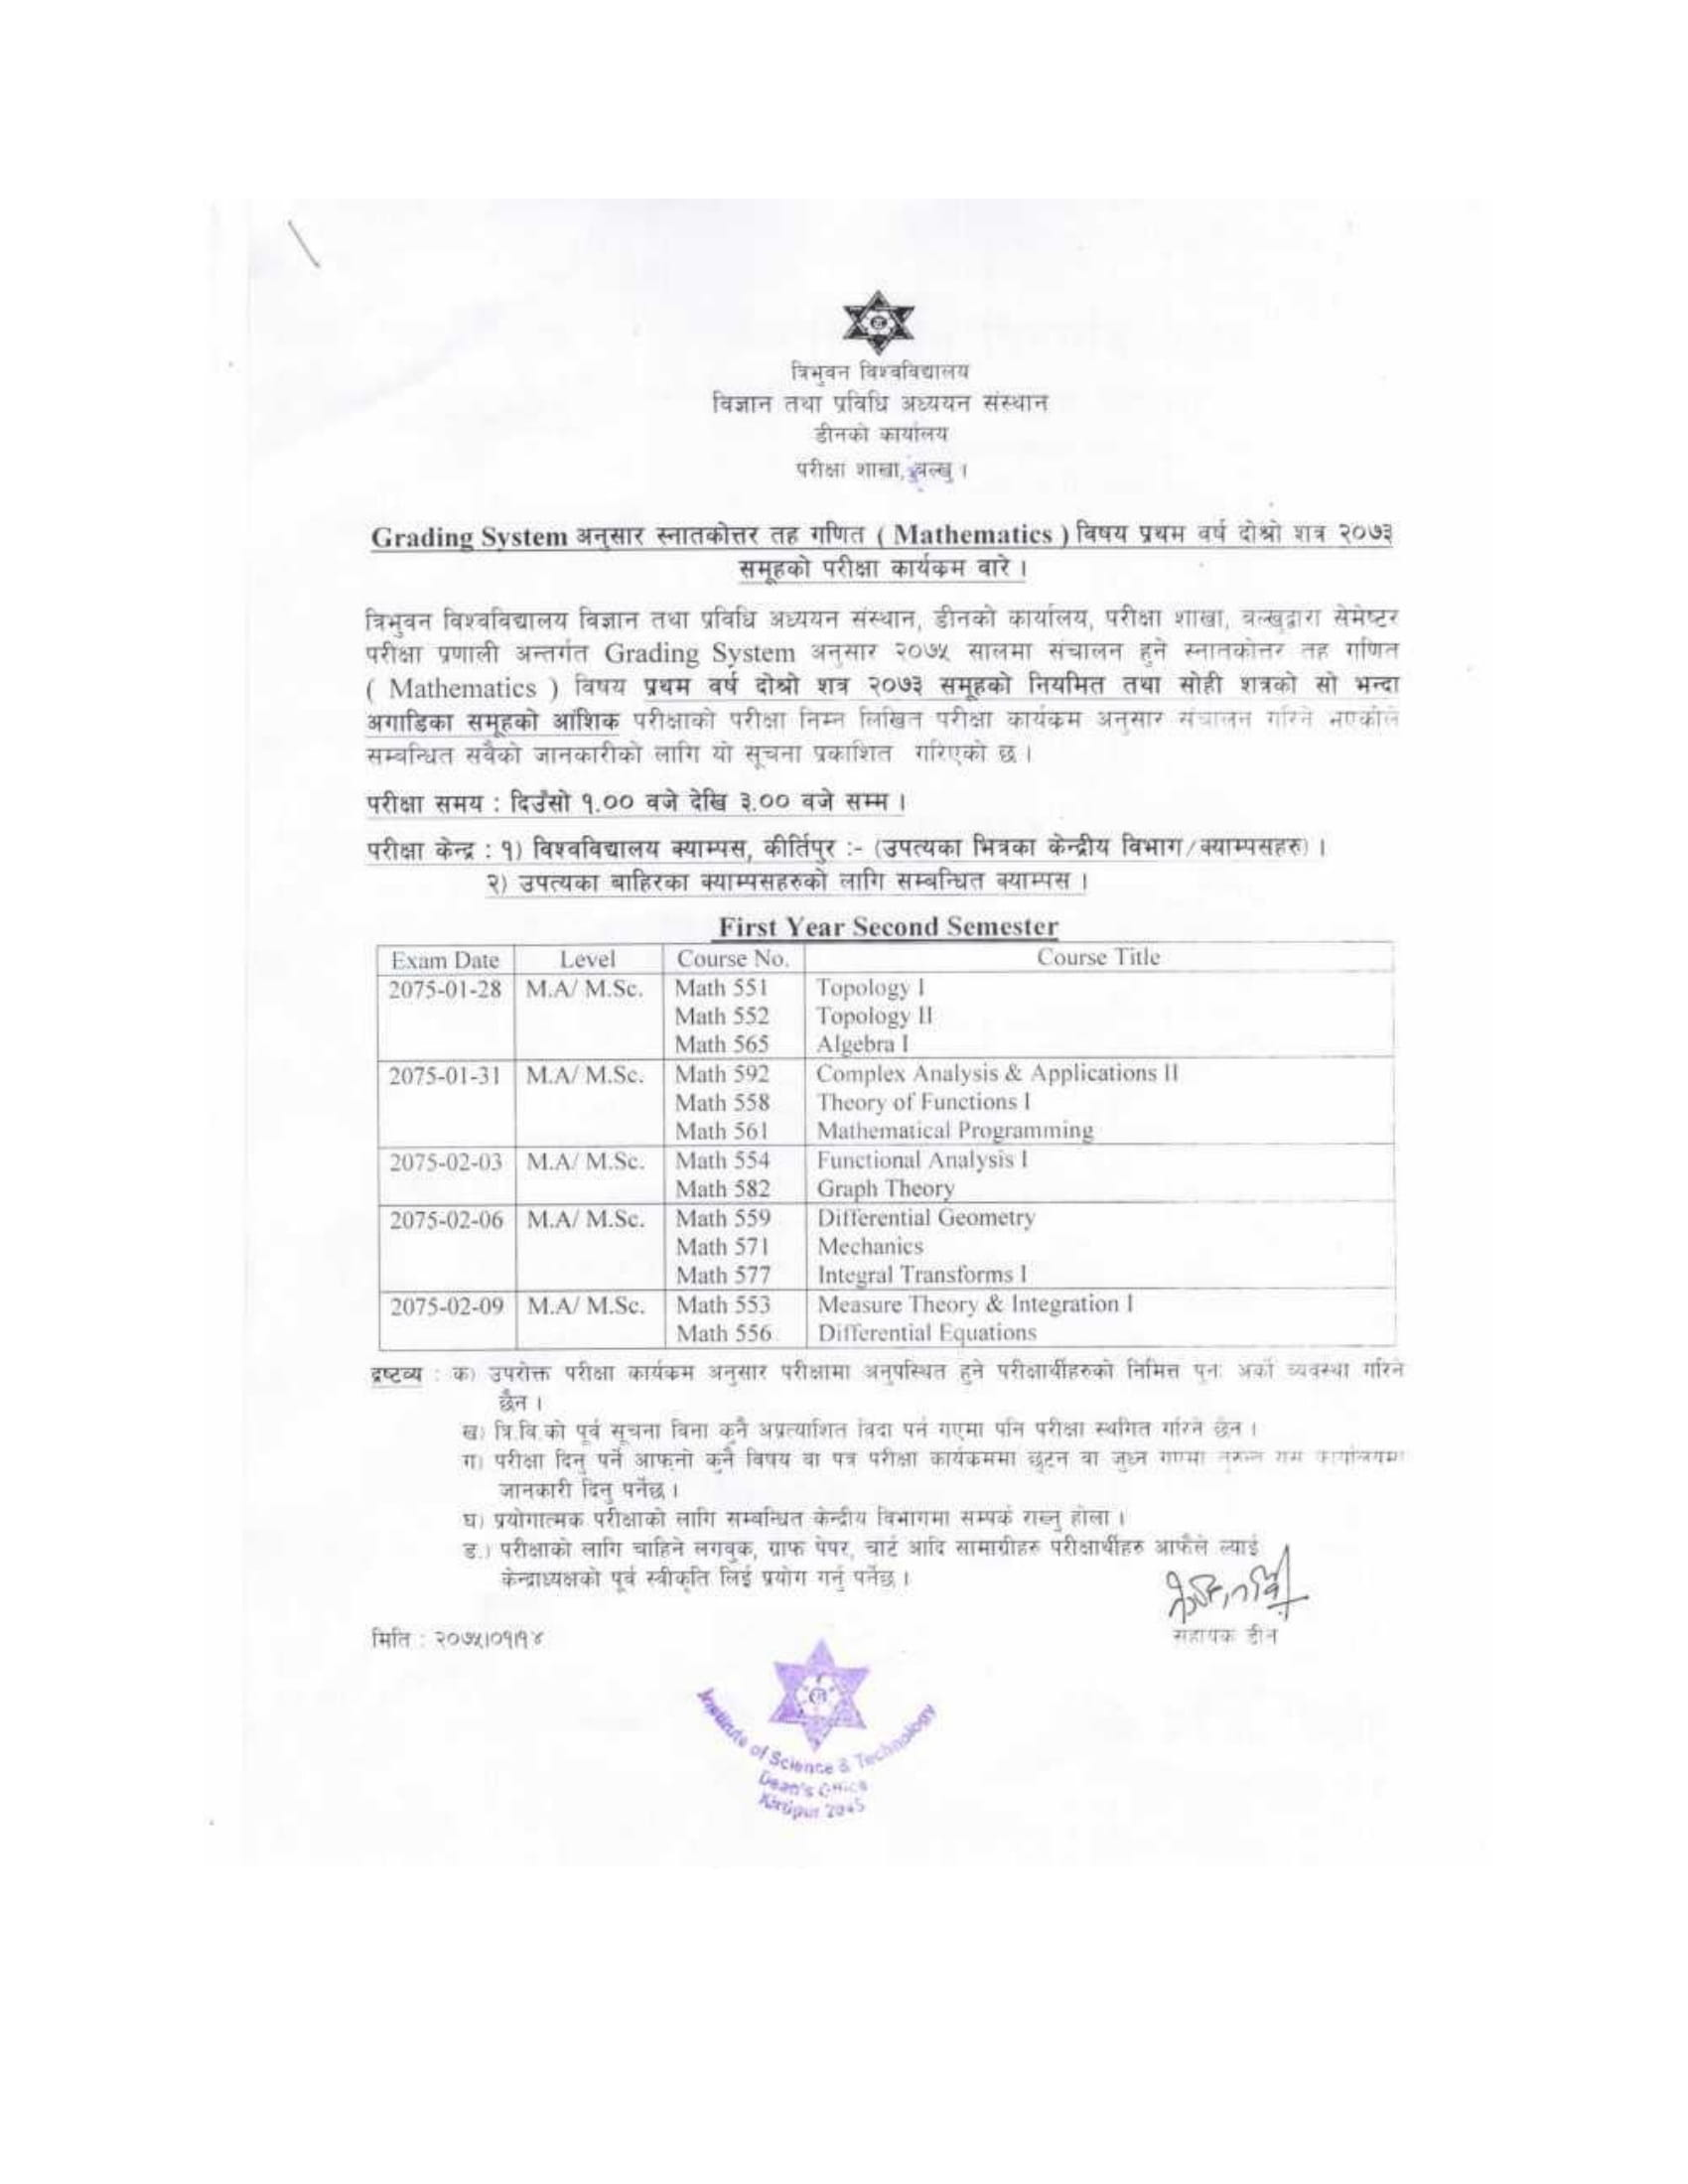 M.Sc. Mathematics II Semester Exam routine published